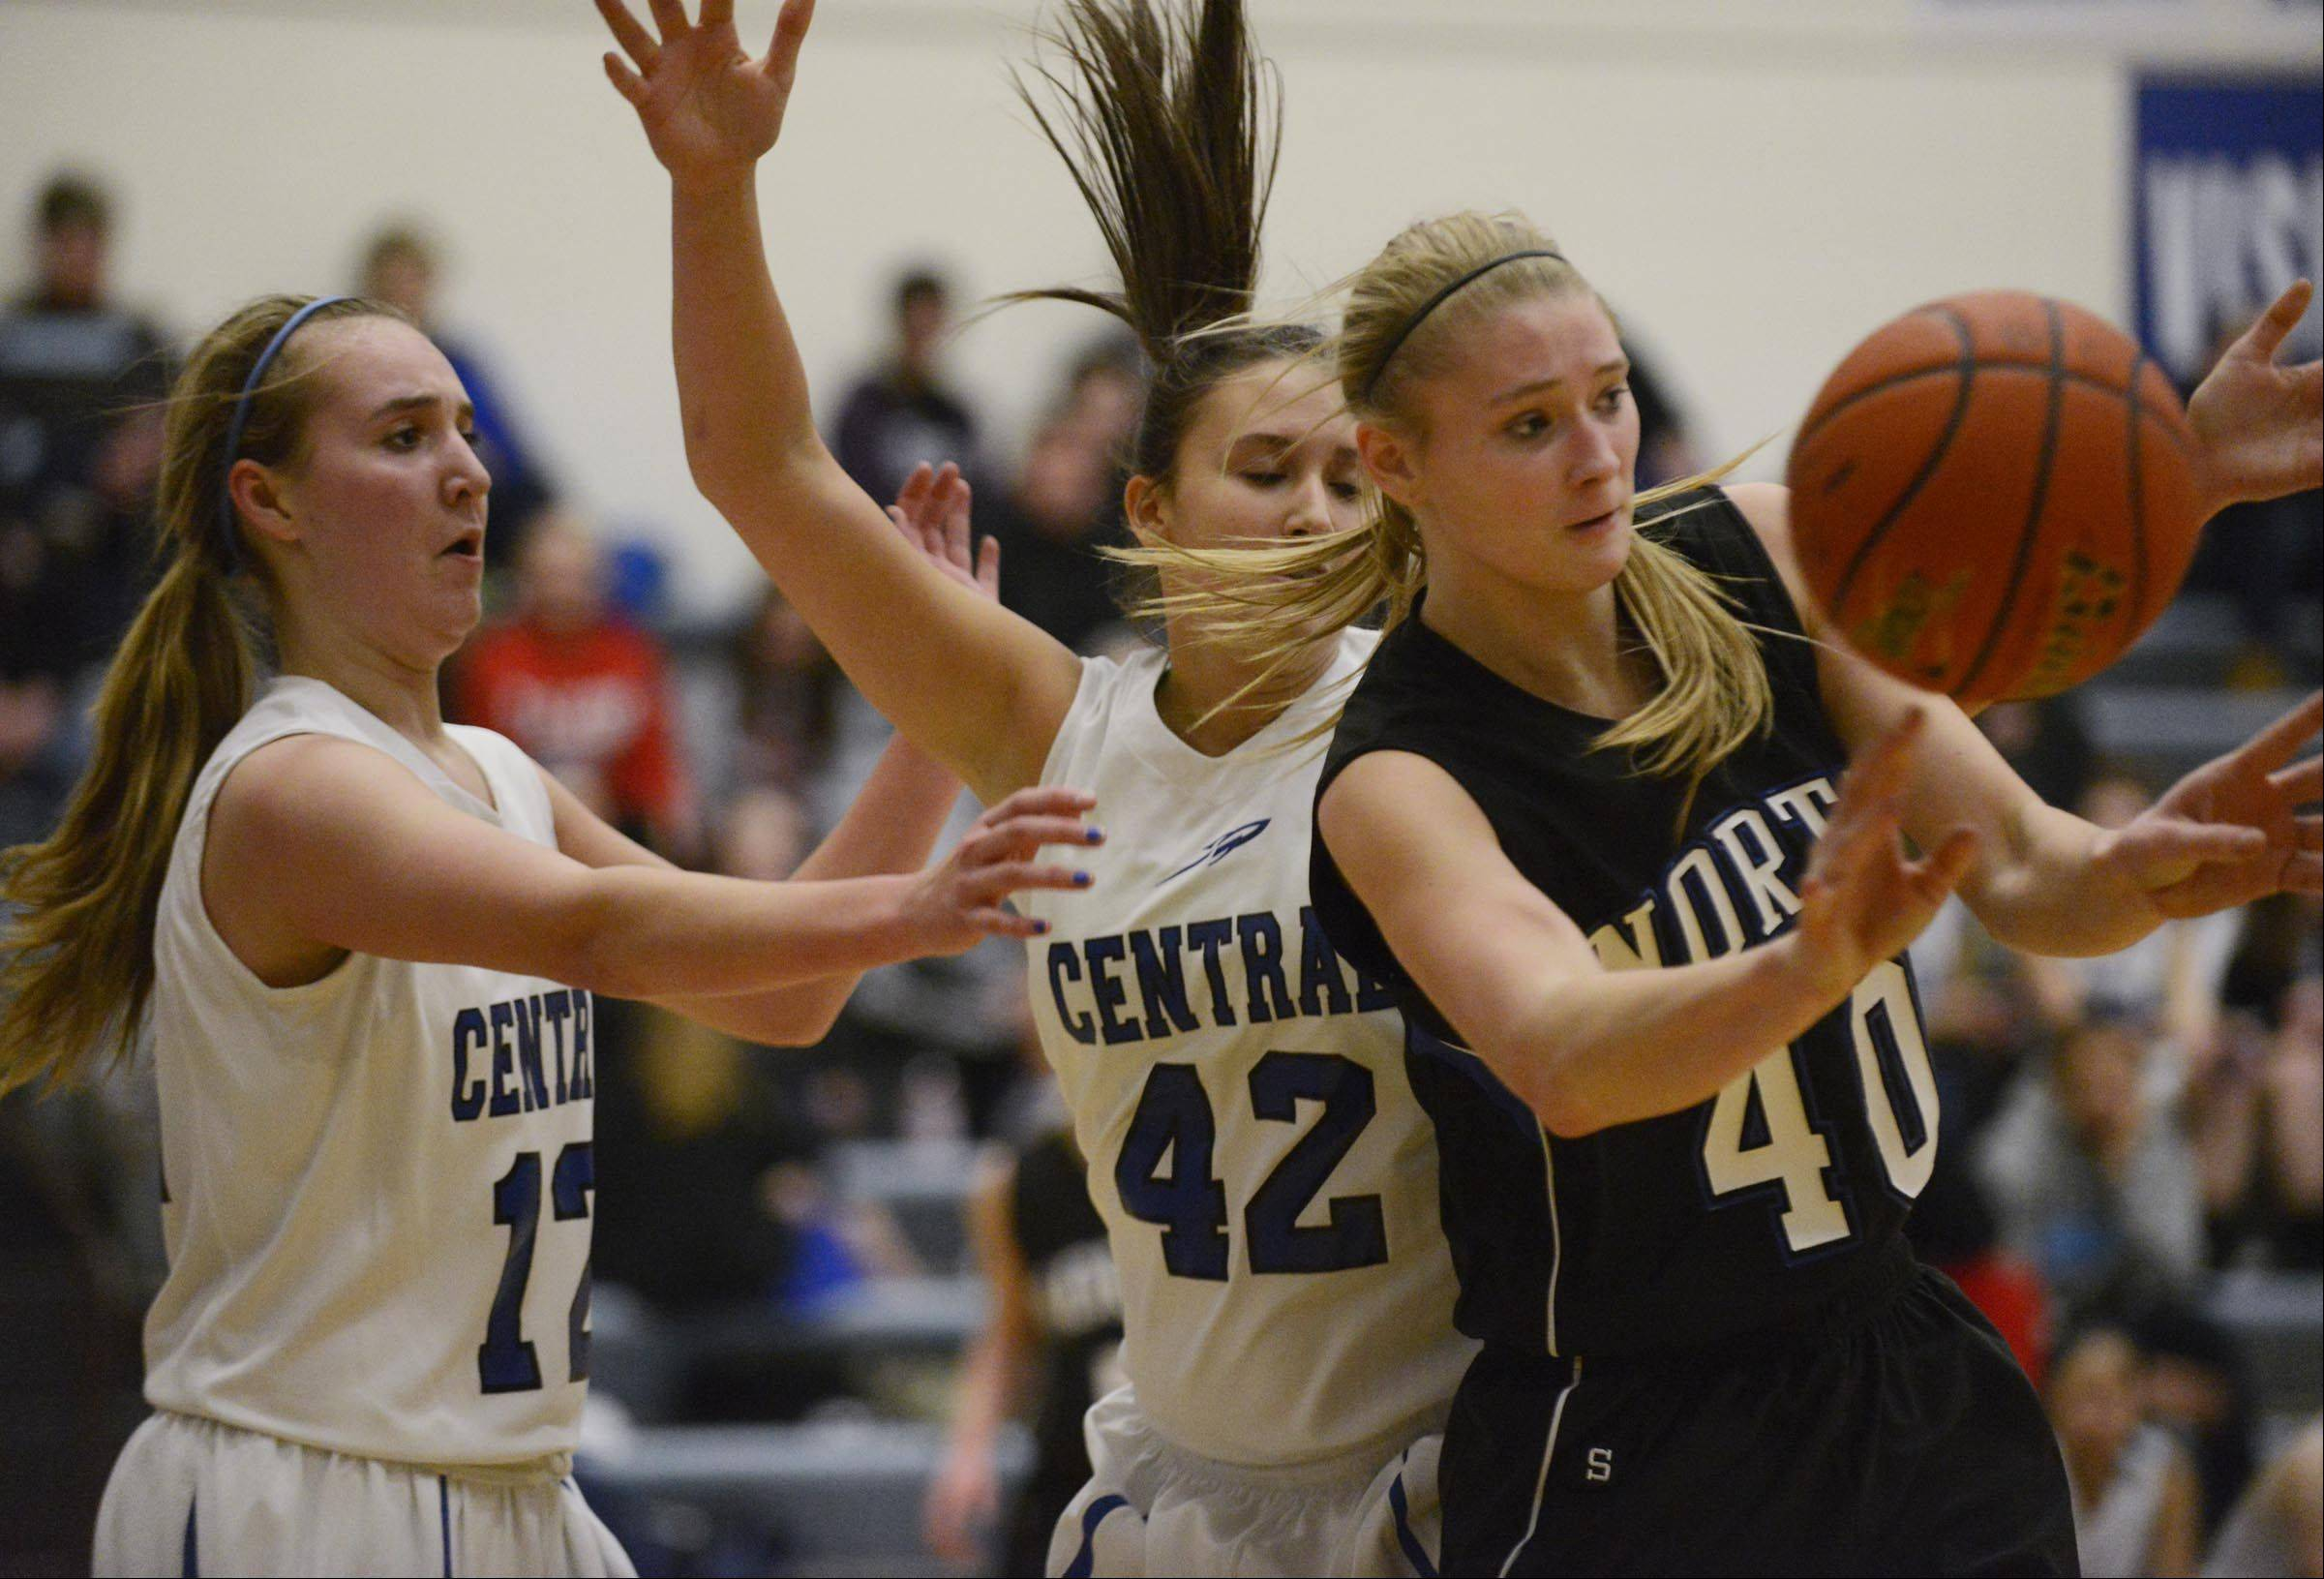 St. Charles North's Morgan Rosencrants passes the ball back out after running into the defense of Burlington Central's Shelby Holt, left, and Alison Colby.